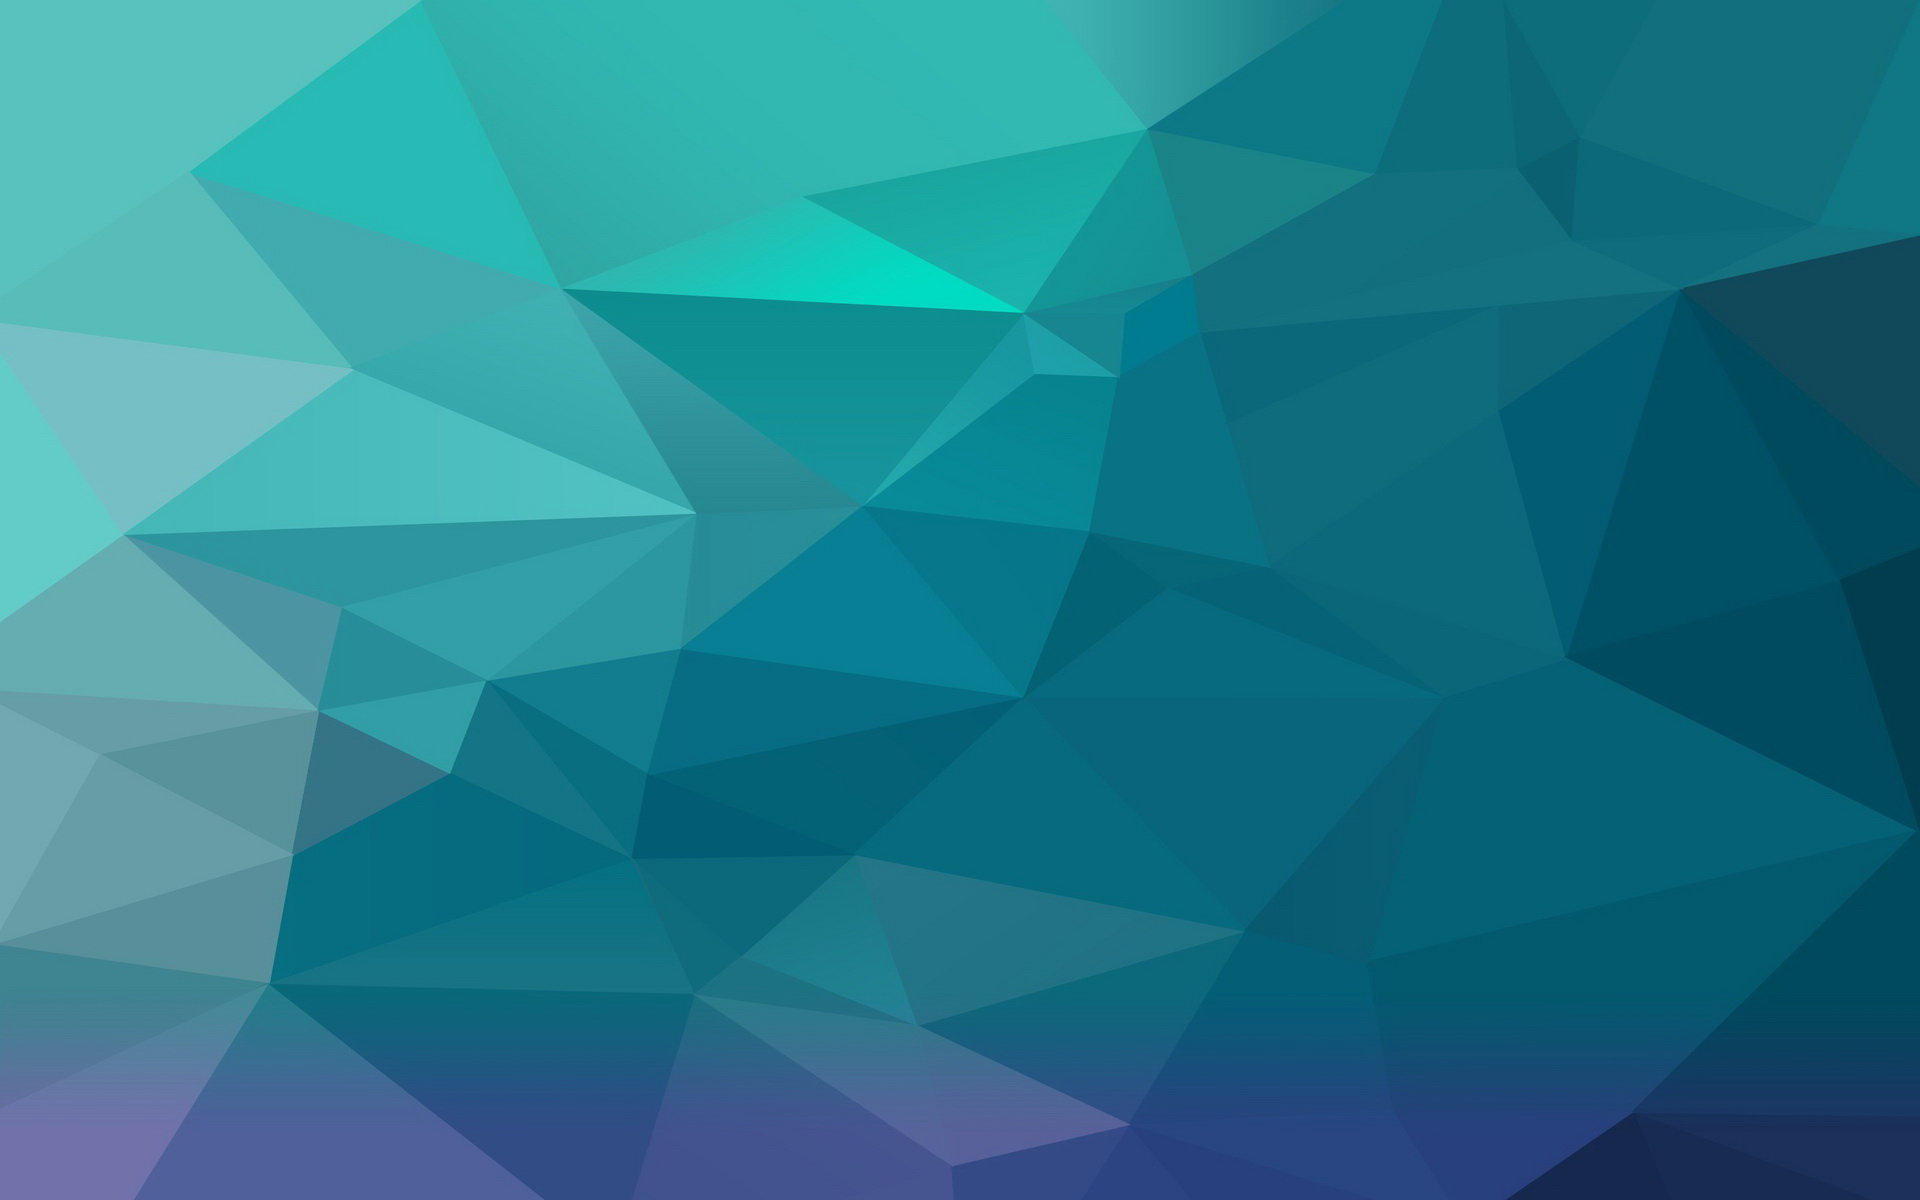 Download hd 1920x1200 Triangle computer background ID:269506 for free